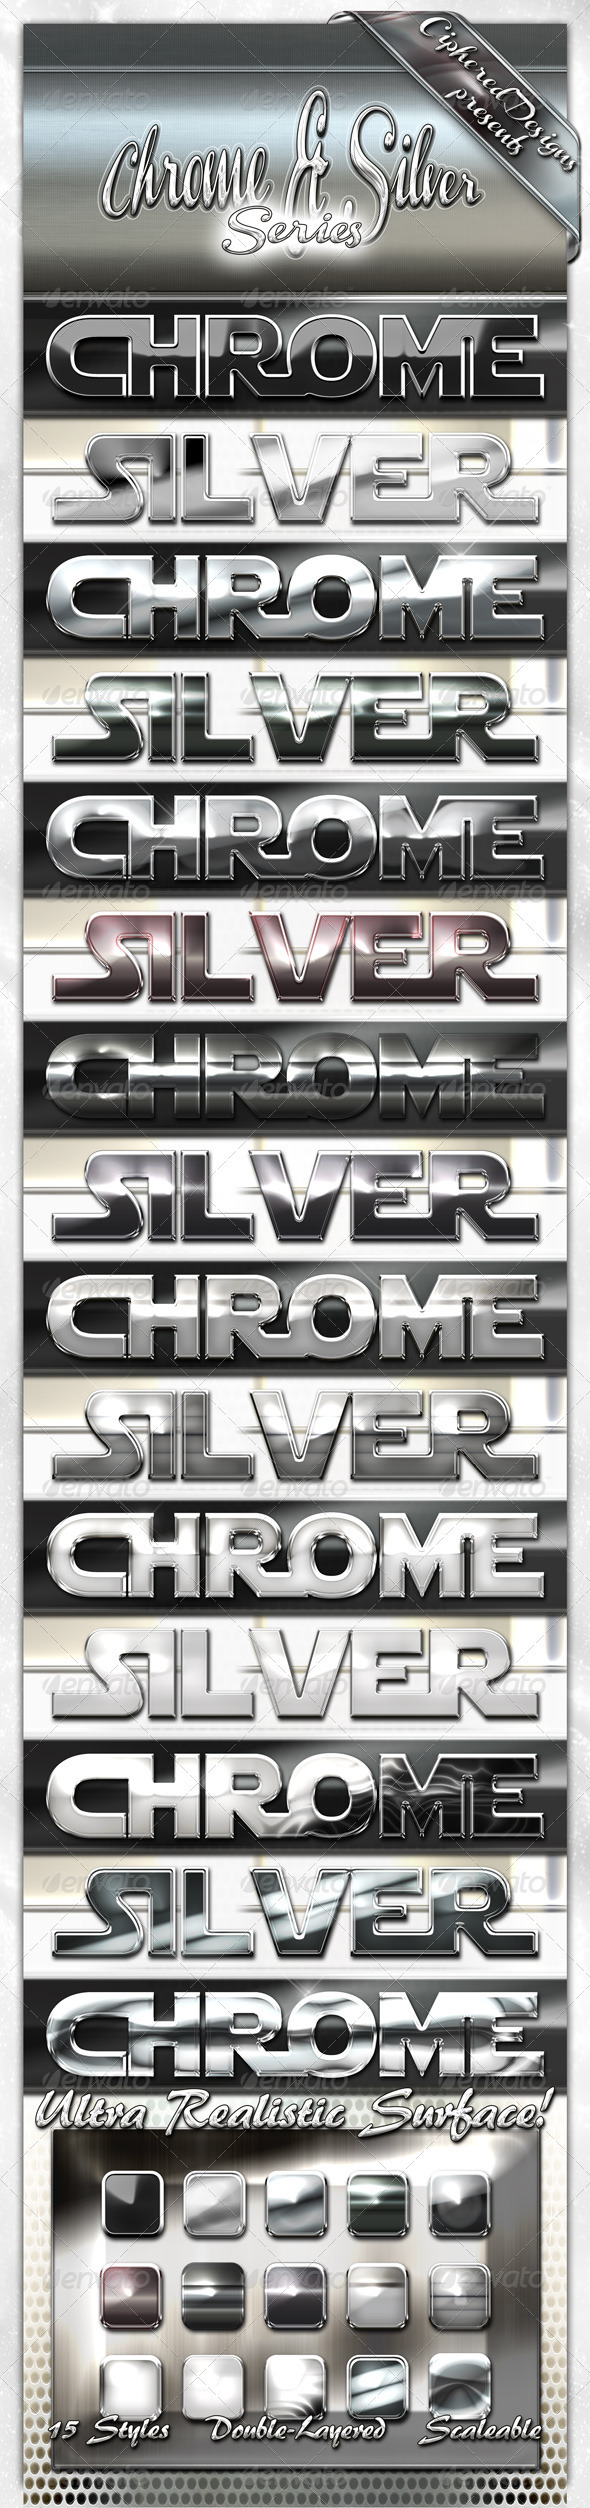 GraphicRiver Chrome & Silver Series Photoshop Styles 1365010